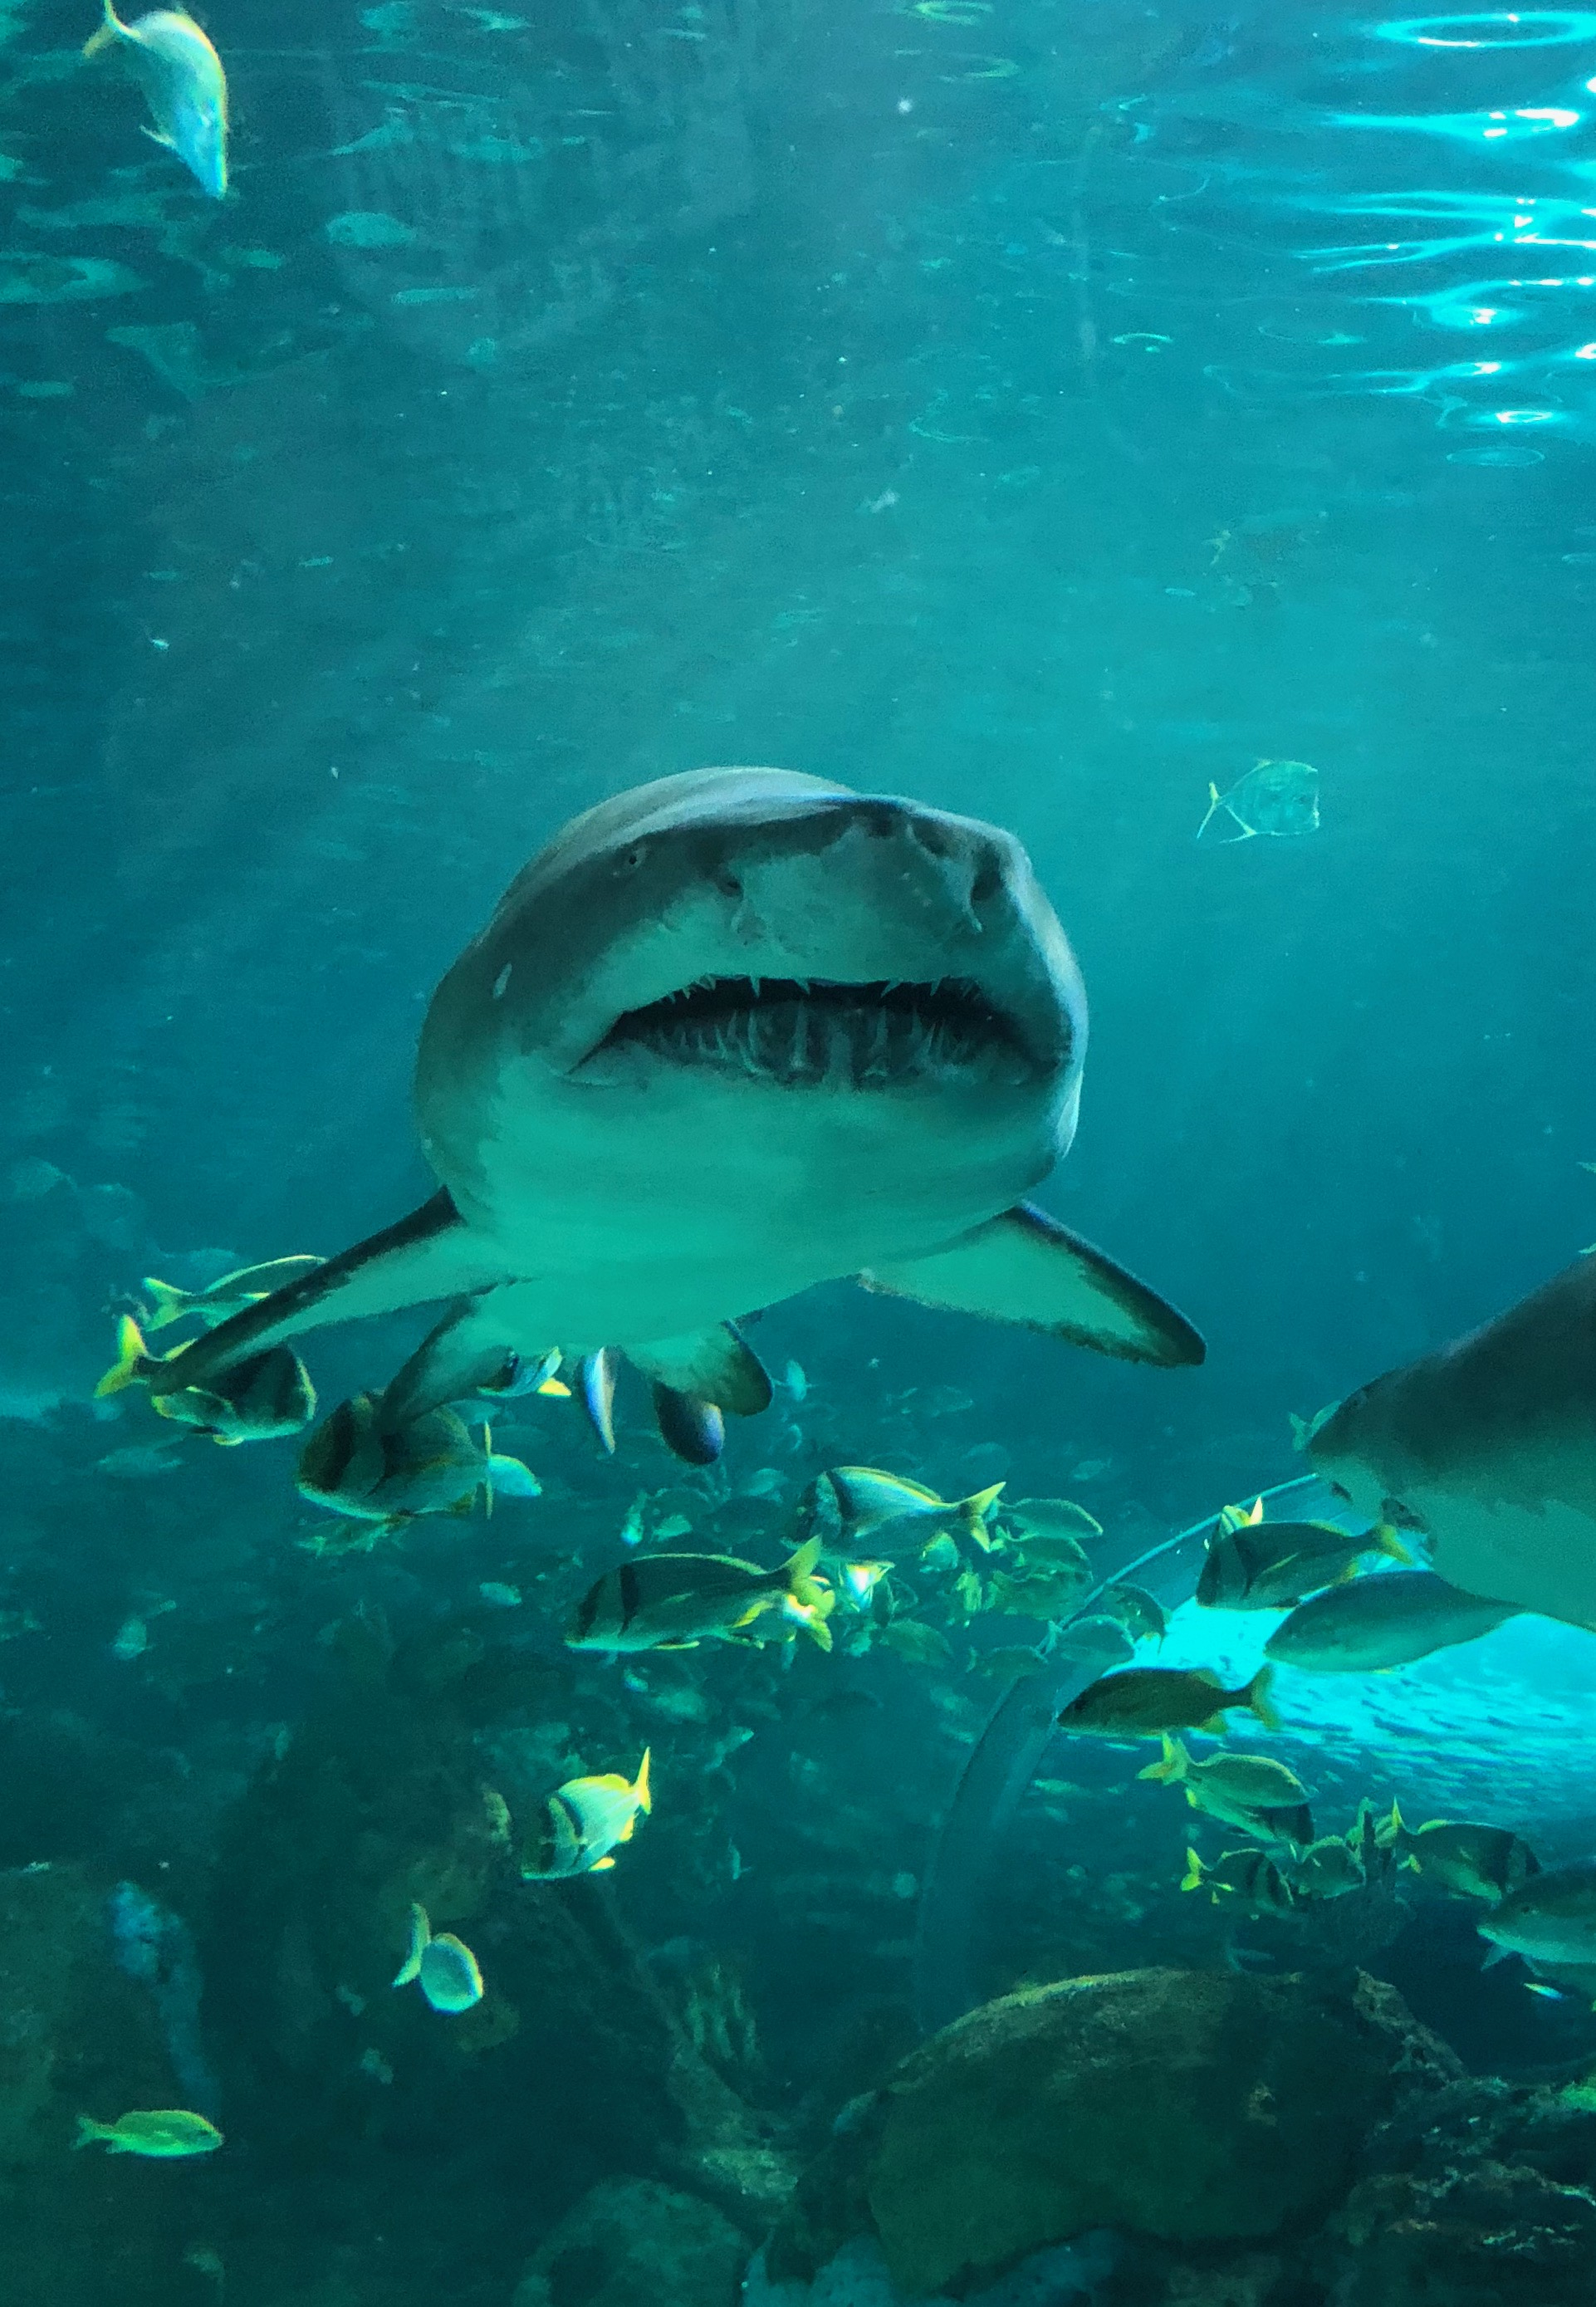 Shark at Ripley's Aquarium of Canada